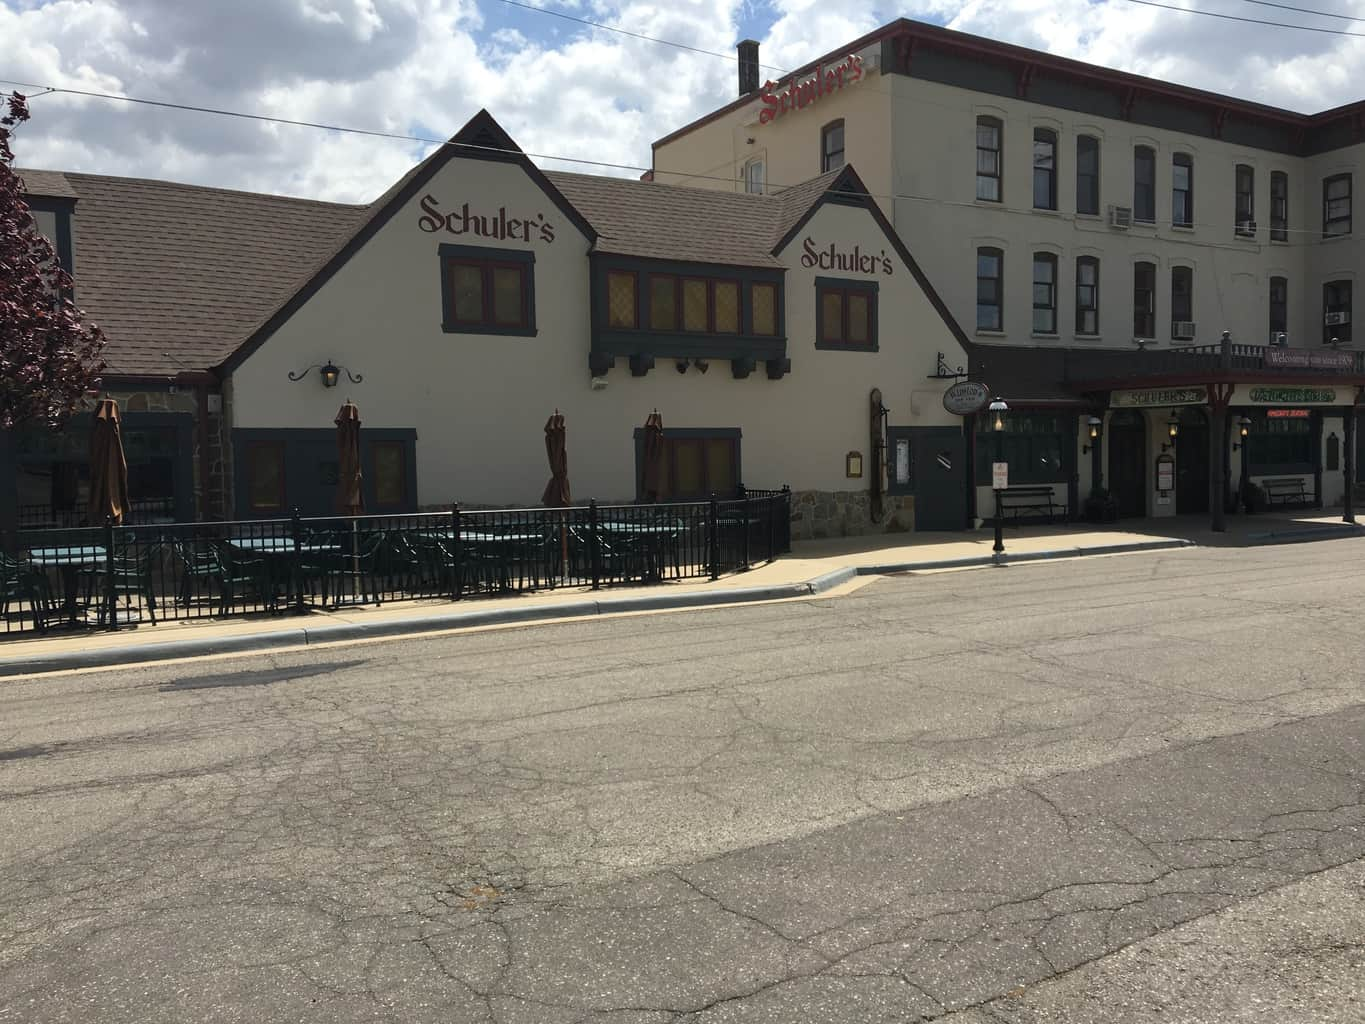 Marshall: Michigan's Small Town Appeal - The Awesome Mitten